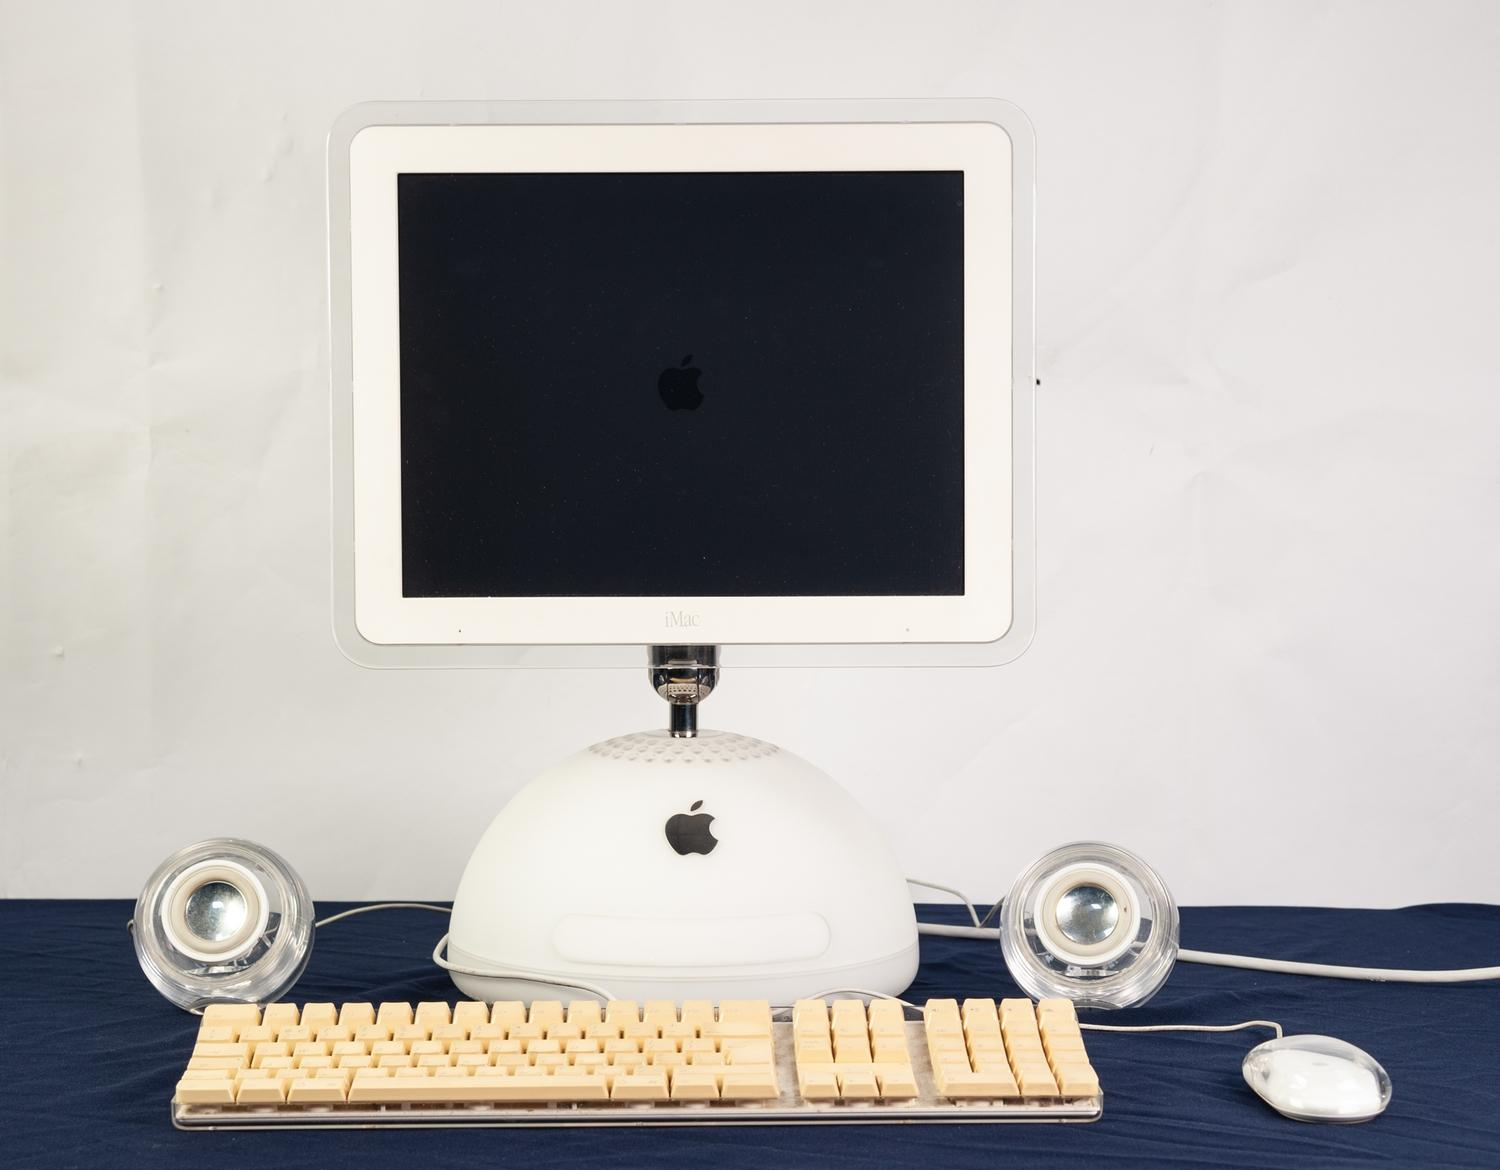 Lot 52 - iMAC G4, VERSION 10.5.8, 15 INCH LCD DISPLAY WITH EASY HEIGHT, TILT AND SWIVEL ADJUSTMENT, APPLE